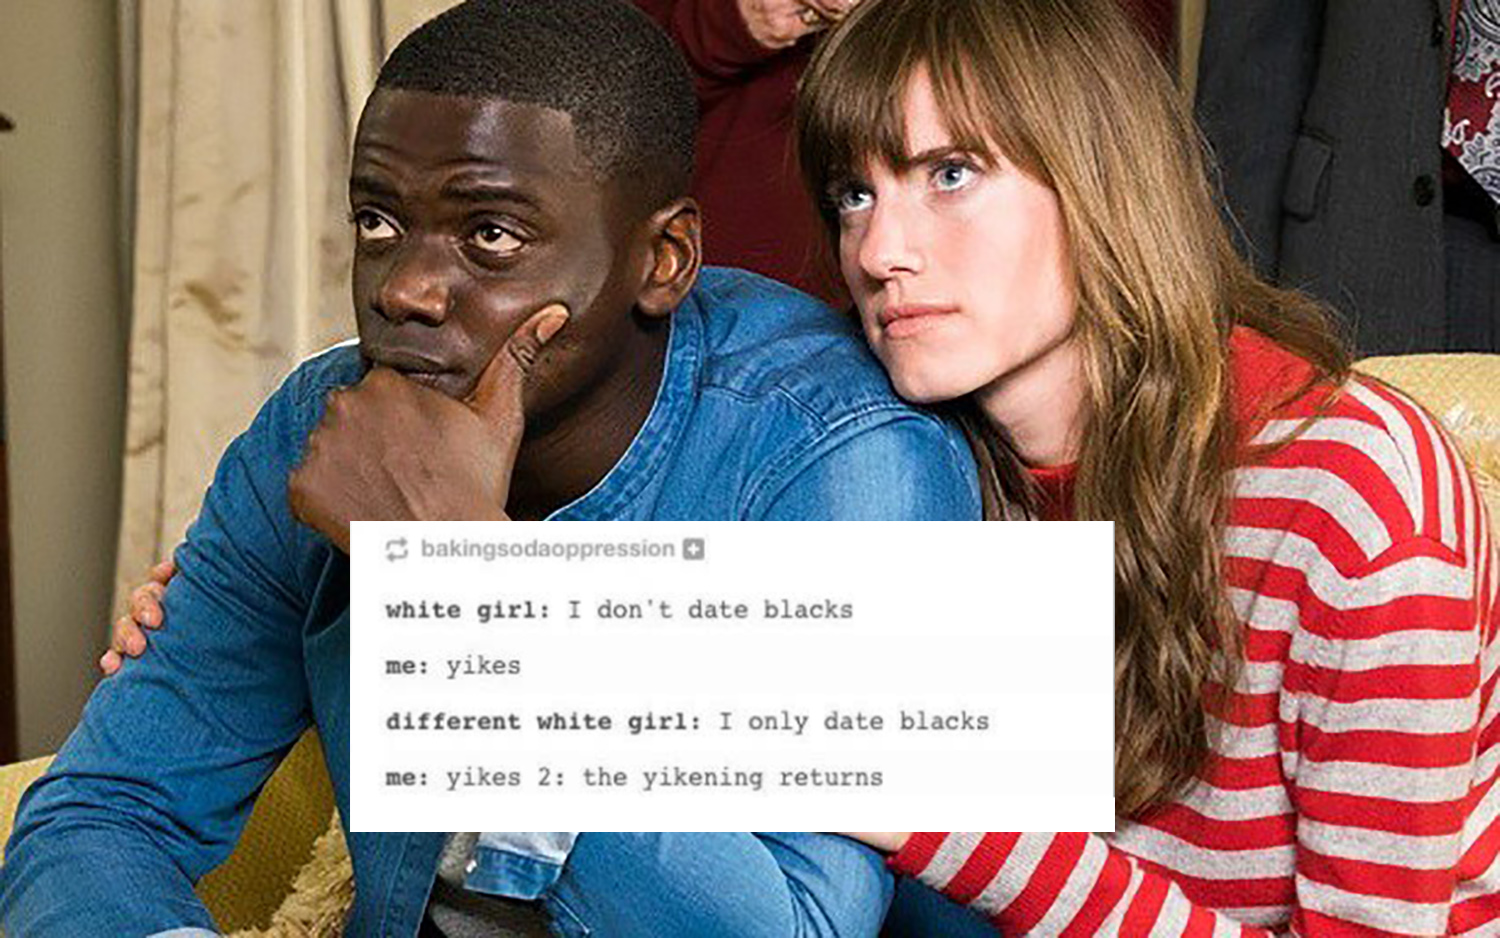 never date a black man